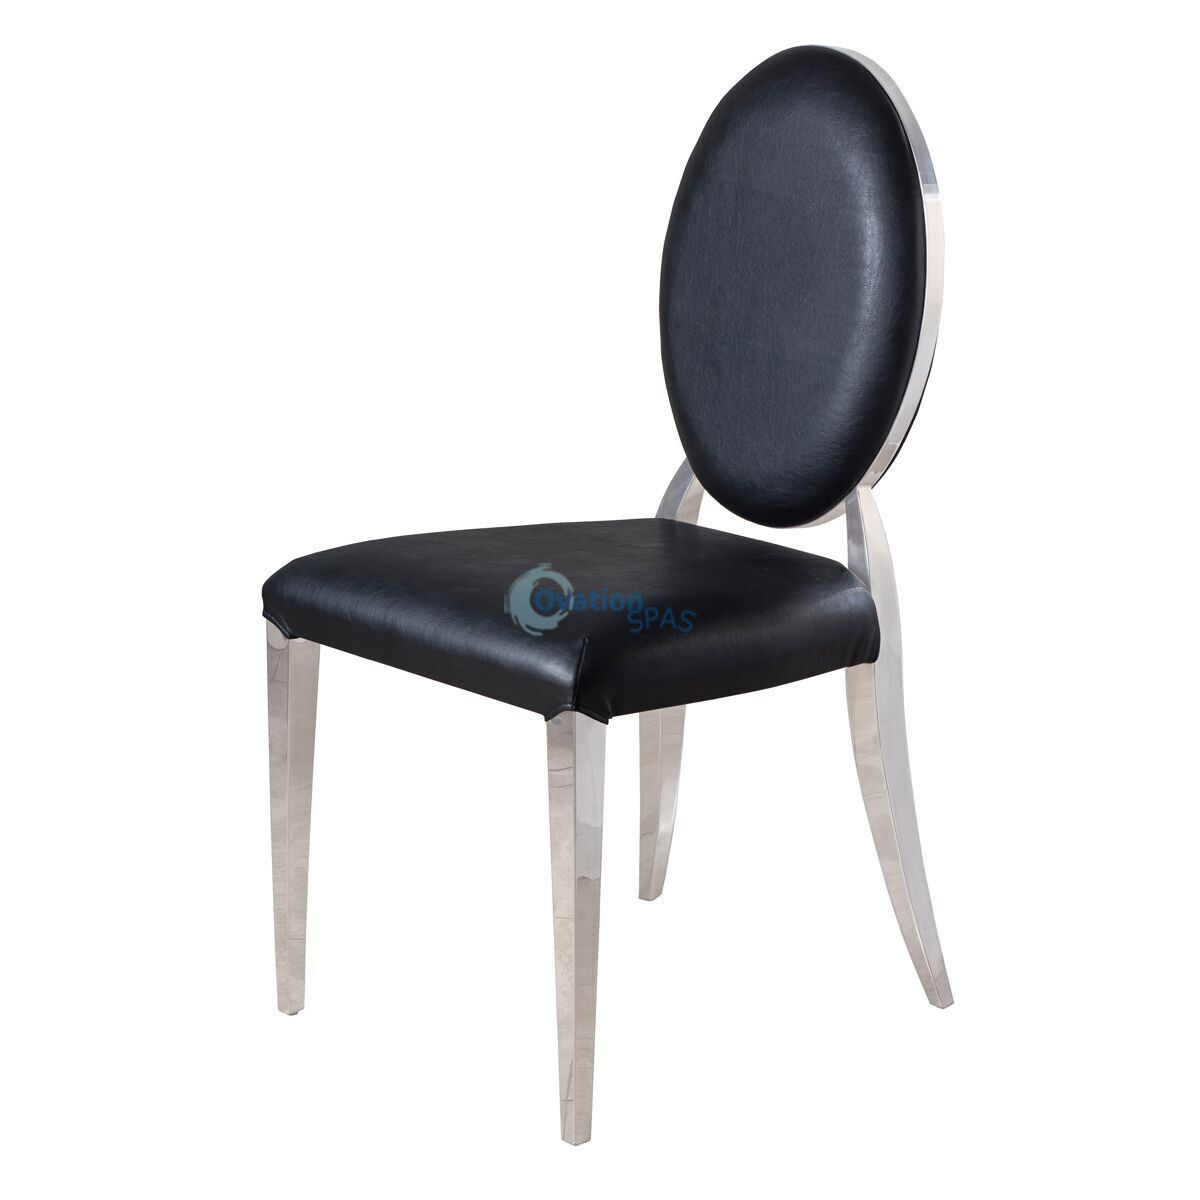 Waiting Chair 8030 - Black